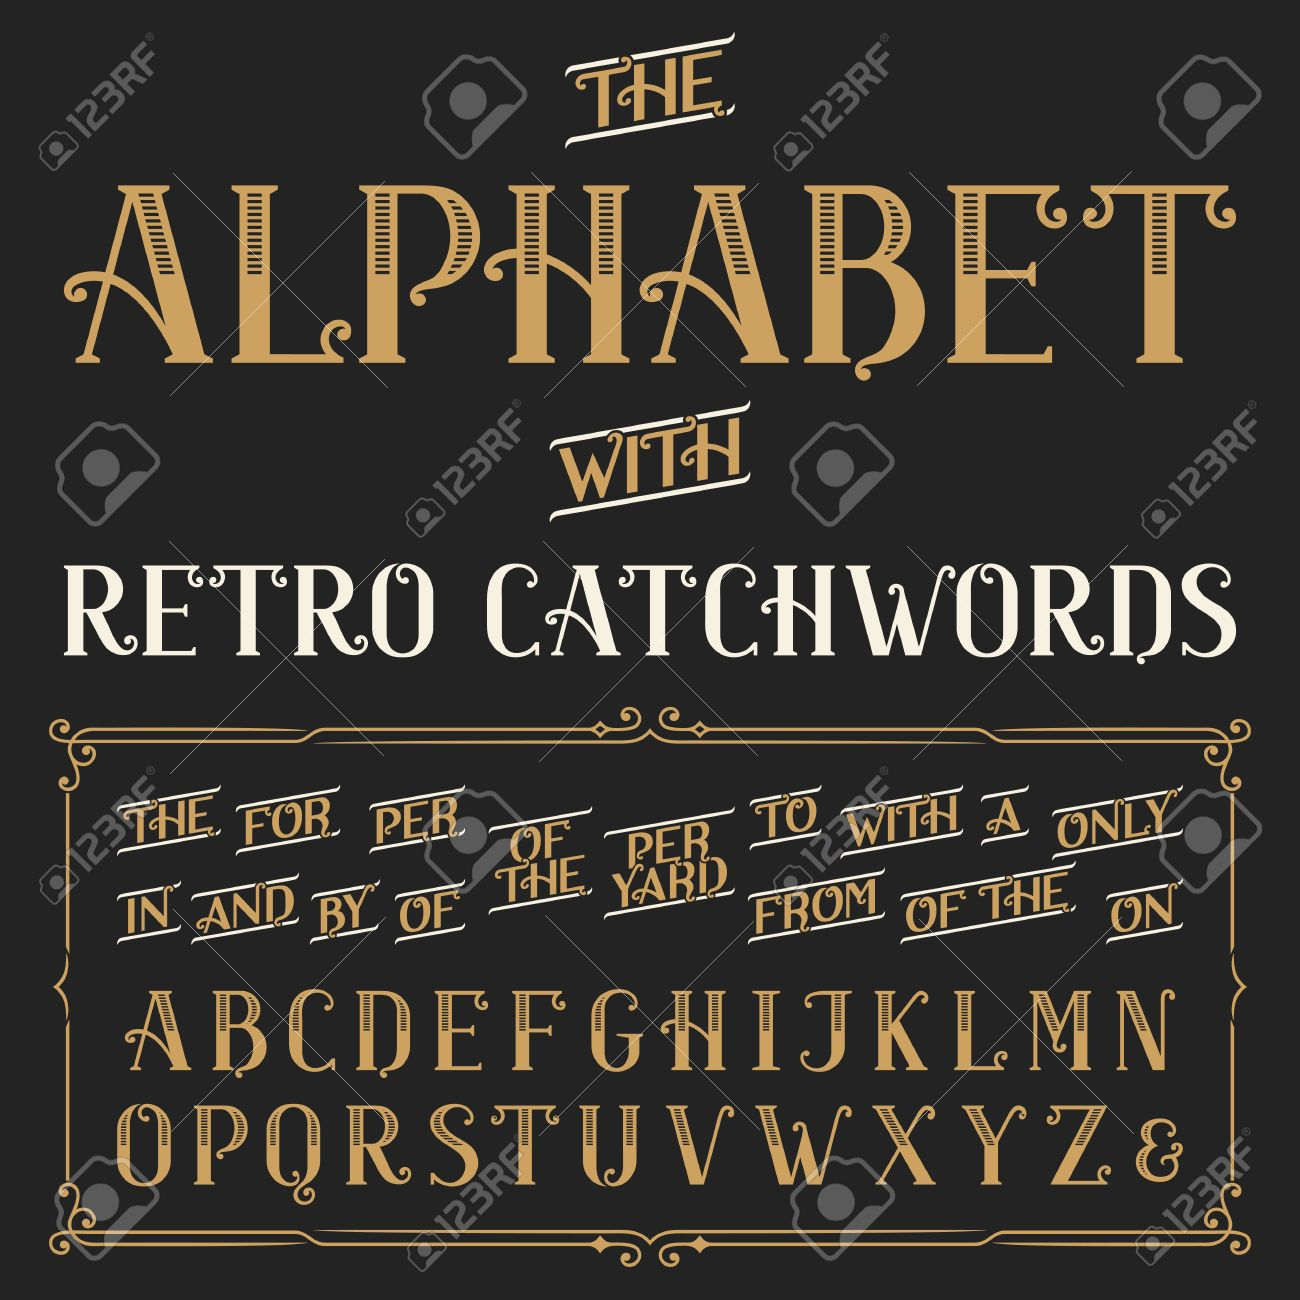 Retro alphabet vector font with catchwords. Ornate letters and catchwords the, for, a, from, with, by etc. Stock vector typography for labels, headlines, posters etc. Stock Vector - 43691711